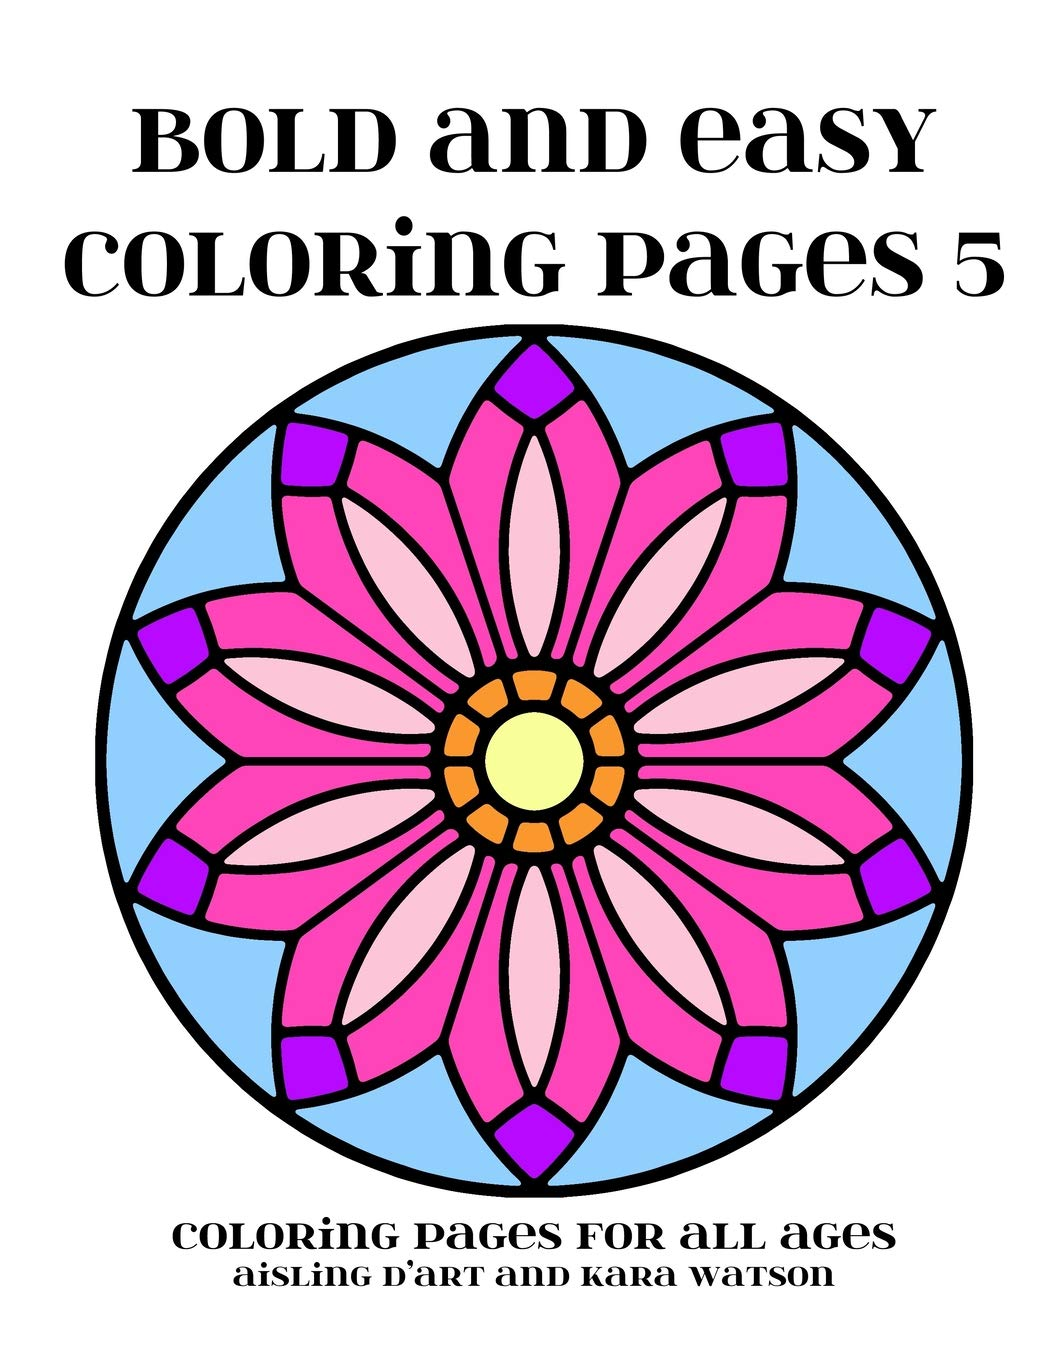 Coloring Pages For All Ages